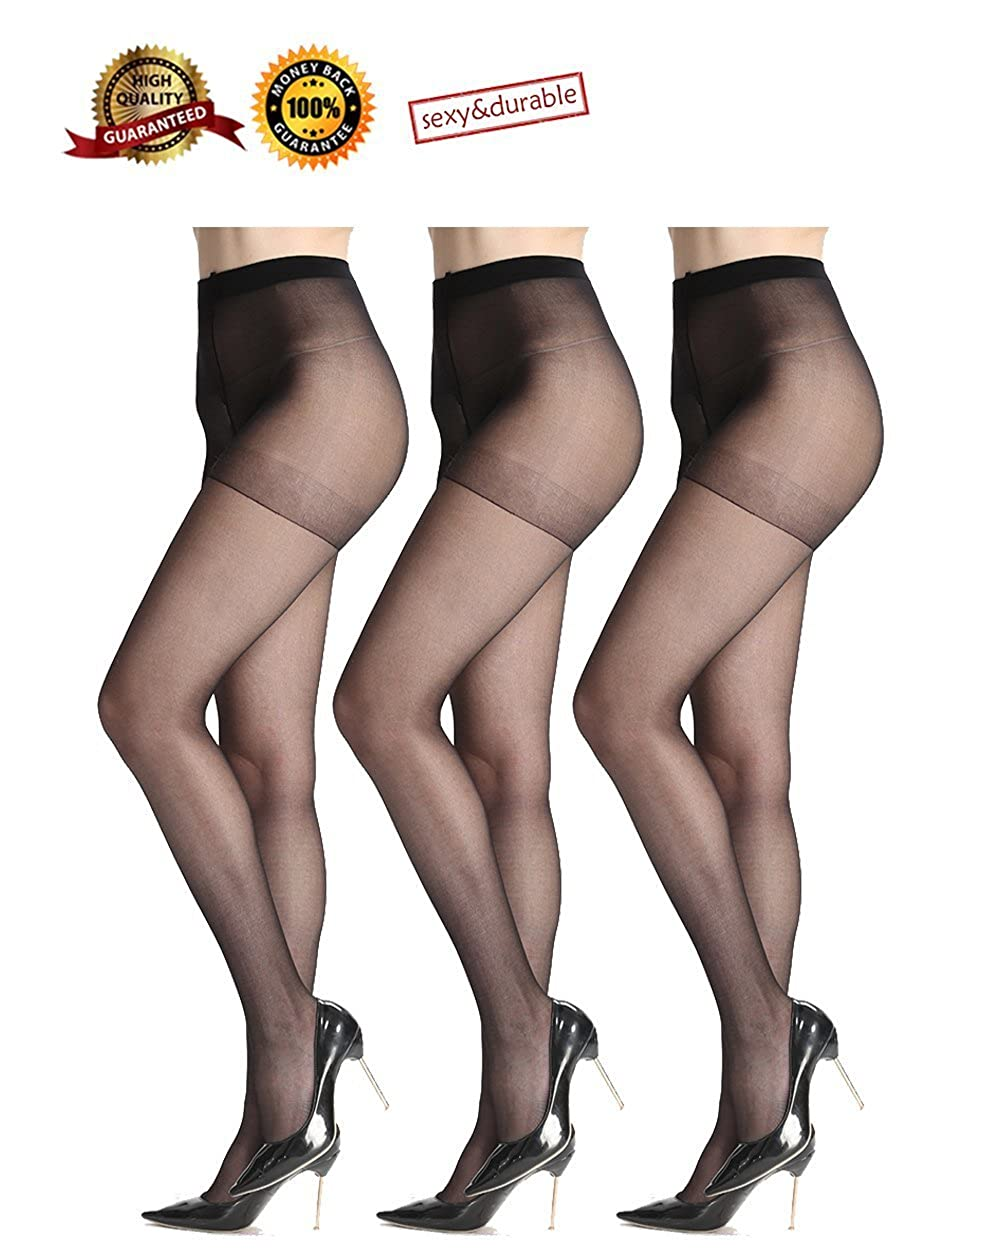 a73f5e246df QLNE sheer pantyhose material is perfect for wear. Pantyhose sheer stockings  women tights socks. ❤ Diy Cutting  QLNE sheer pantyhose is beautiful and ...